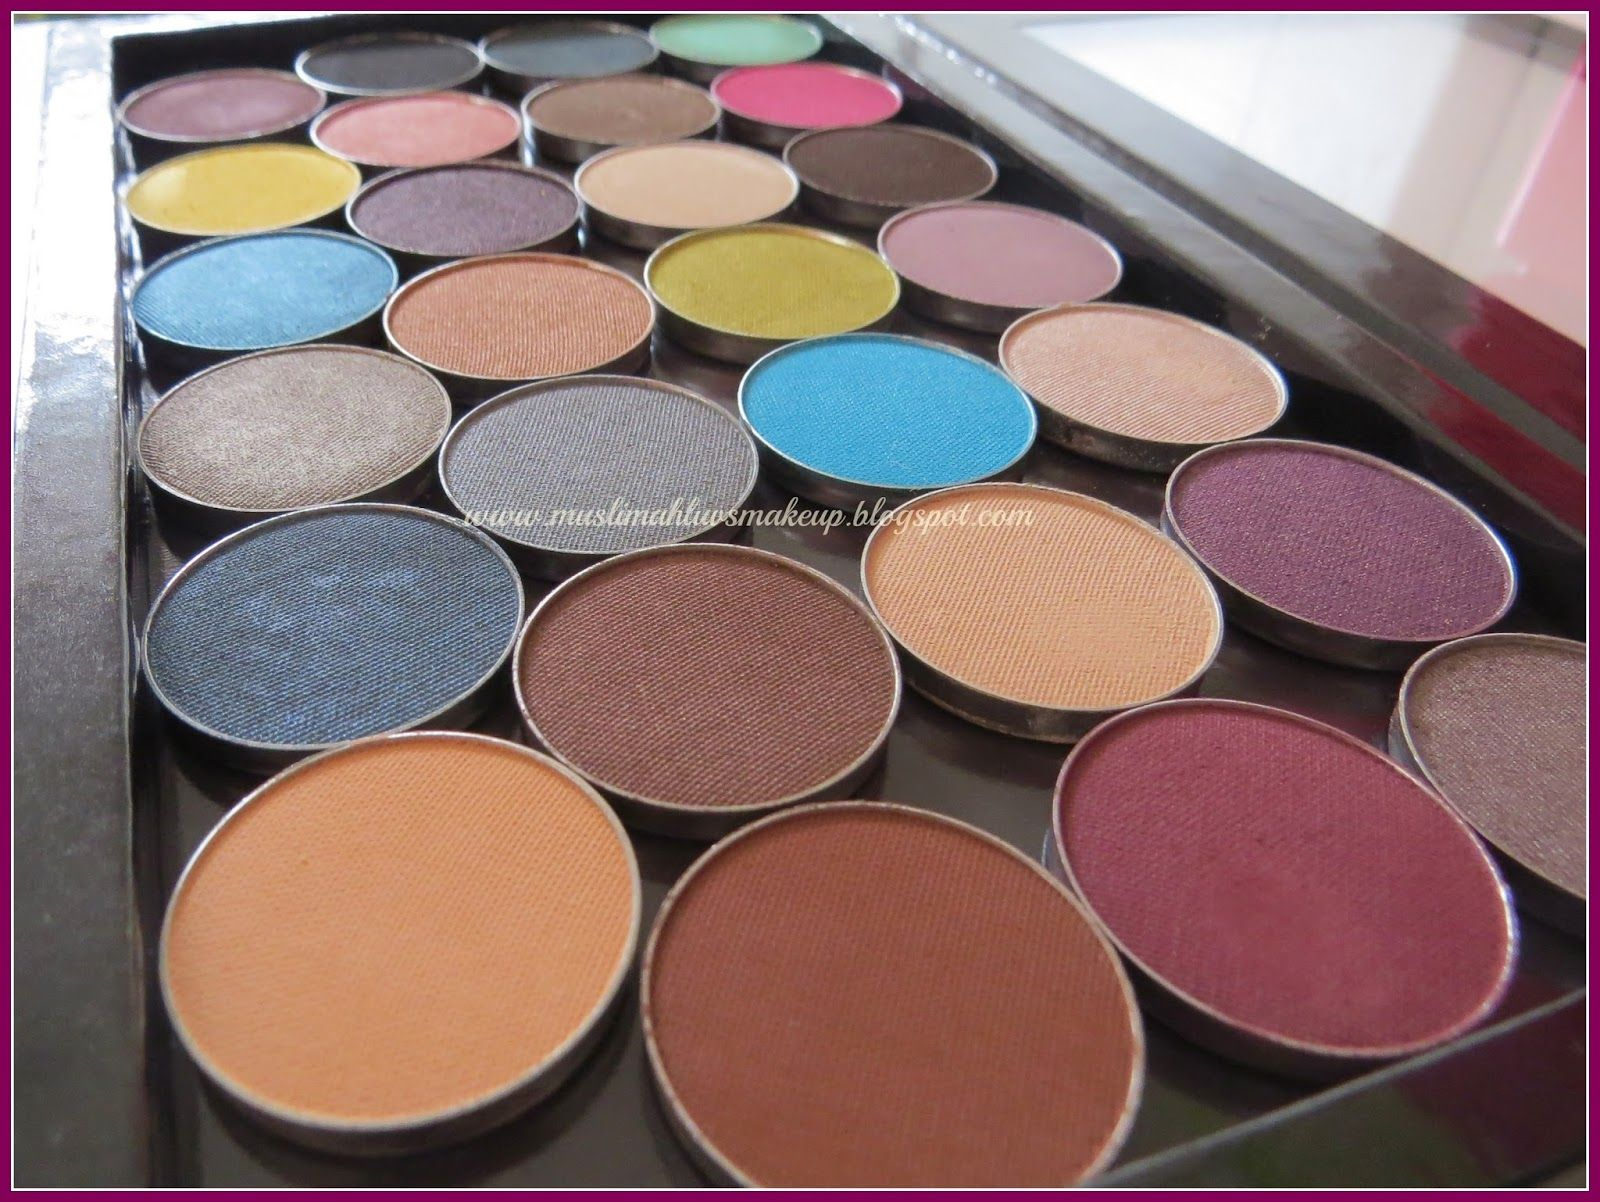 Makeup Geek's Ultimate Eyeshadow Palette Review,Photos and